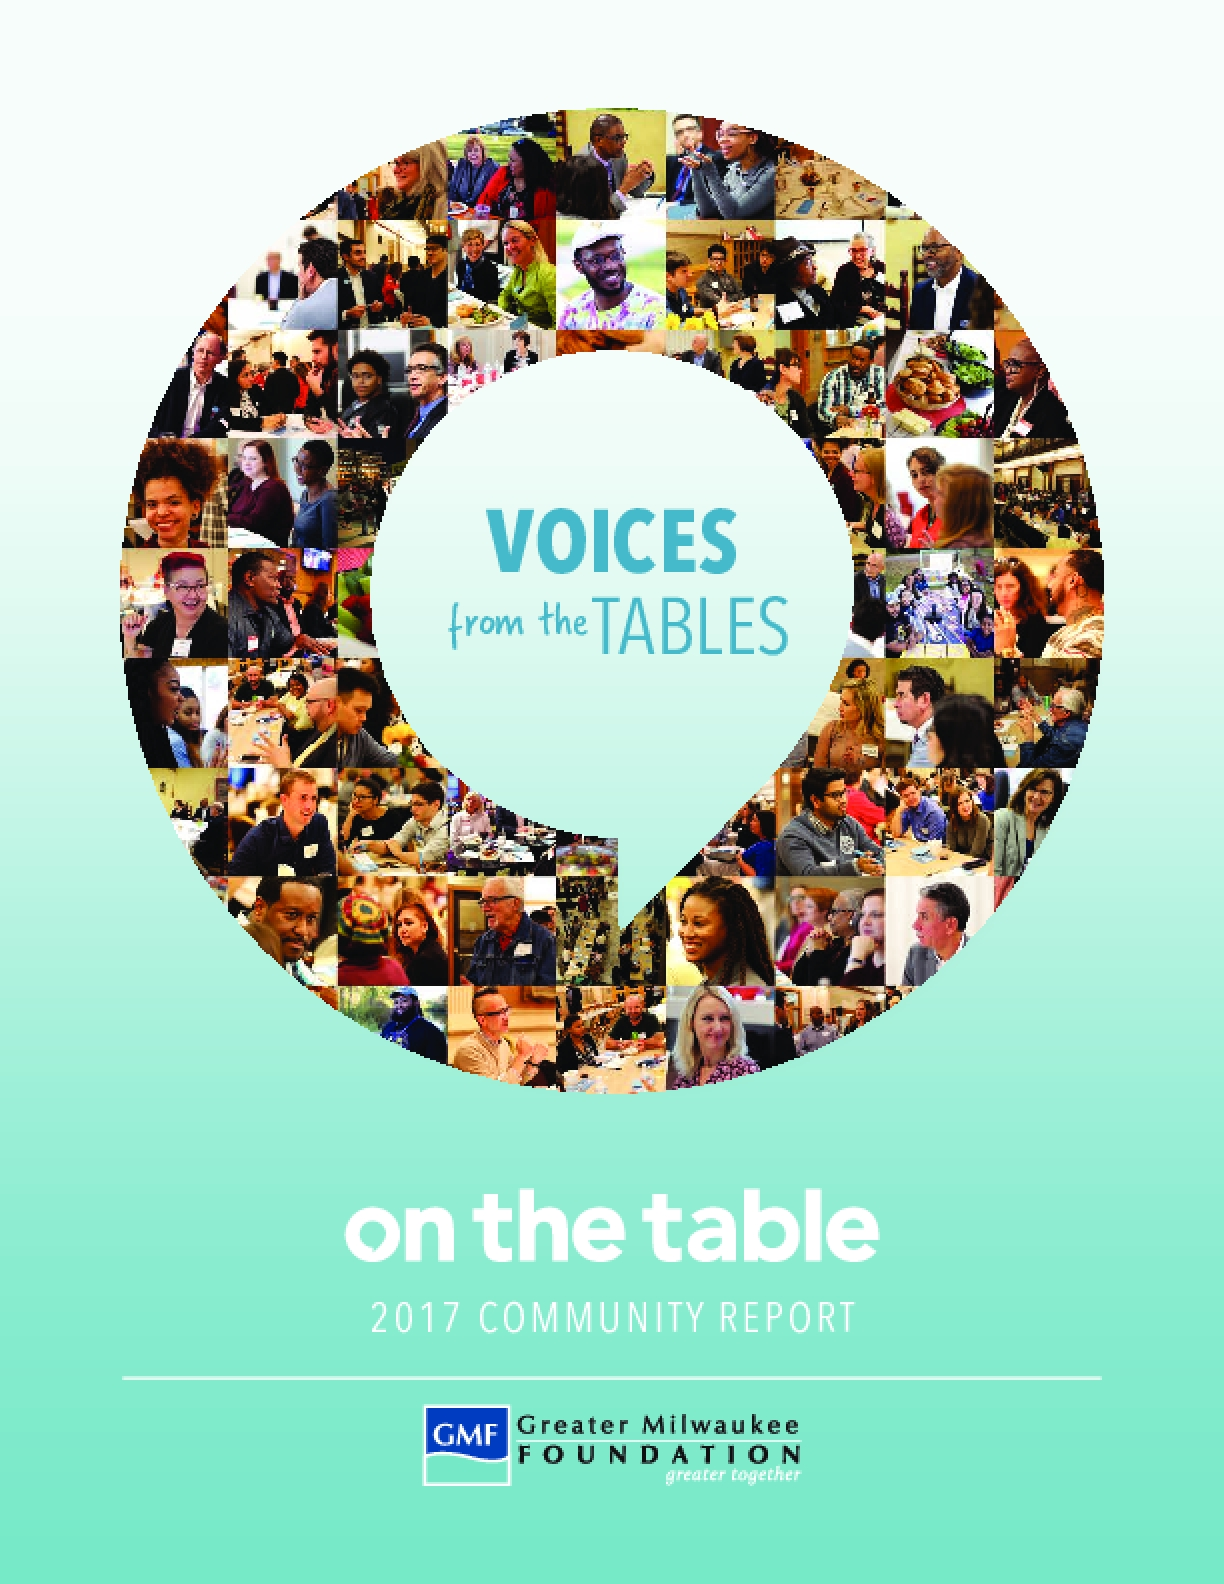 Voices from the Tables